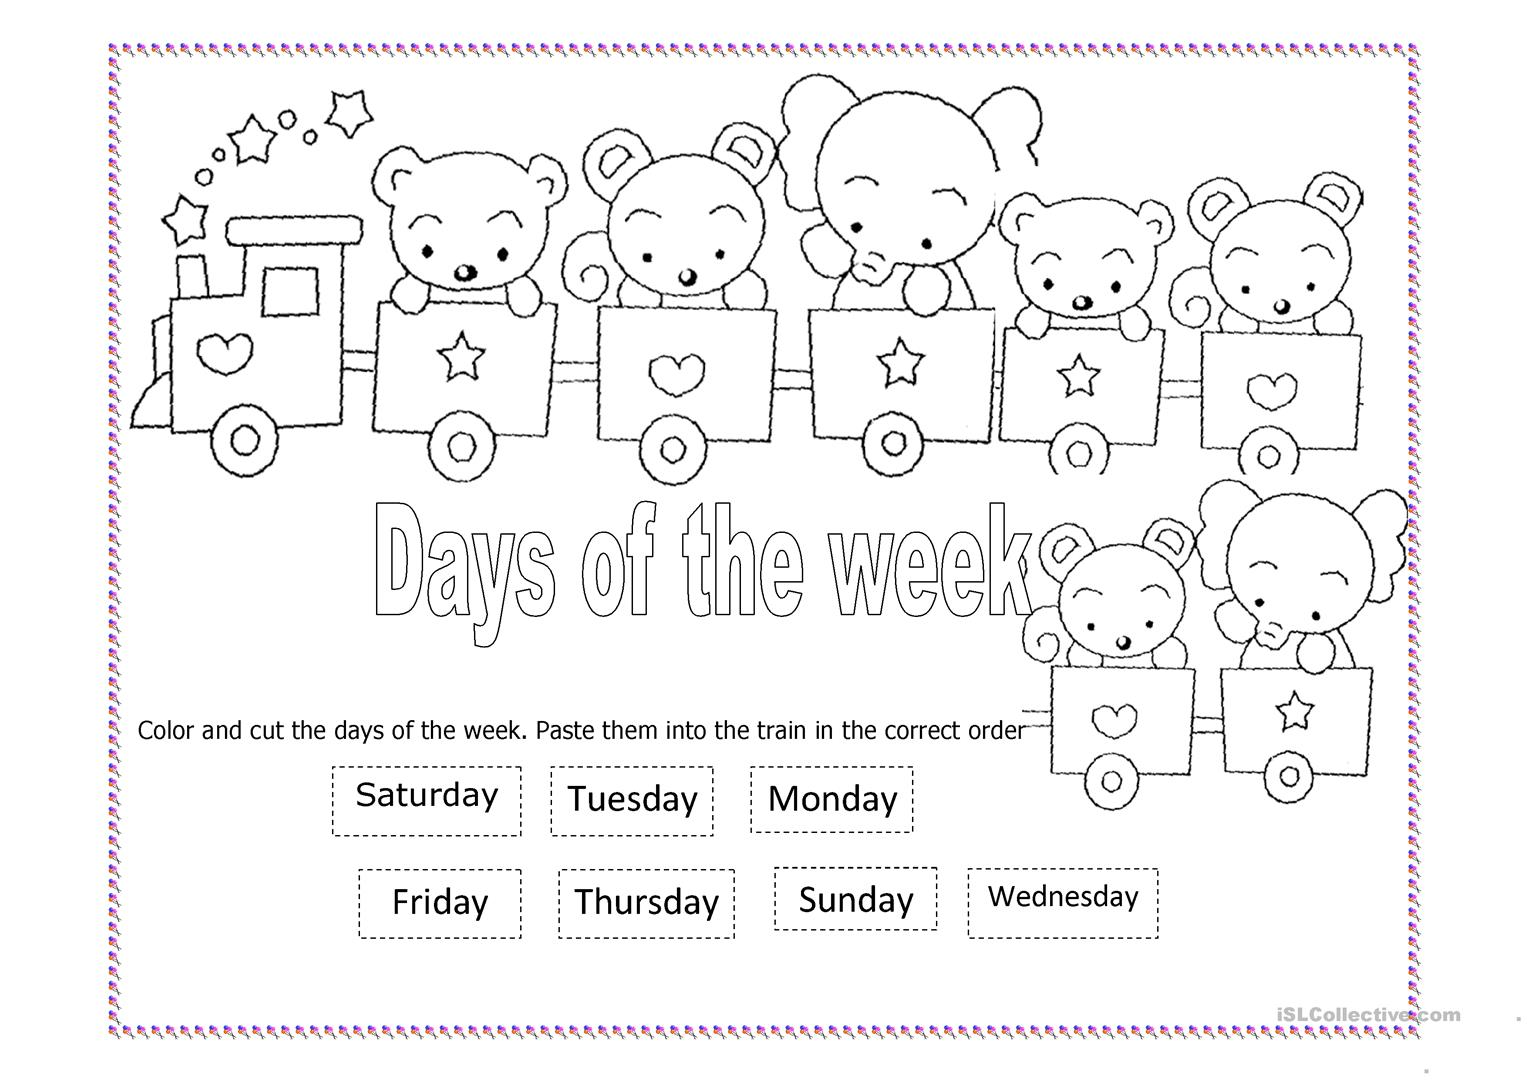 Days Of The Week Train Worksheet